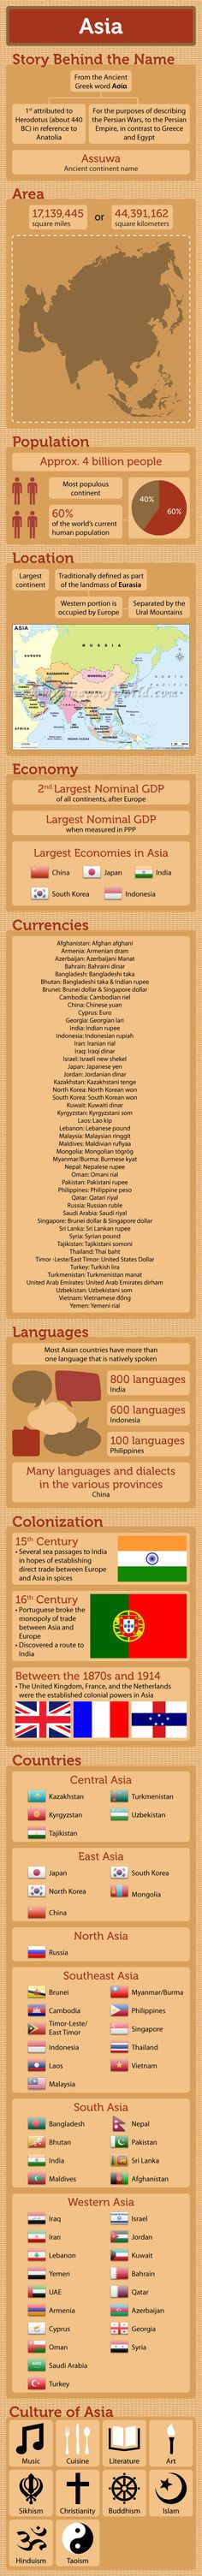 Infographic of  Asia Fast Facts http://www.mapsofworld.com/pages/fast-facts/infographic-of-asia-fast-facts/